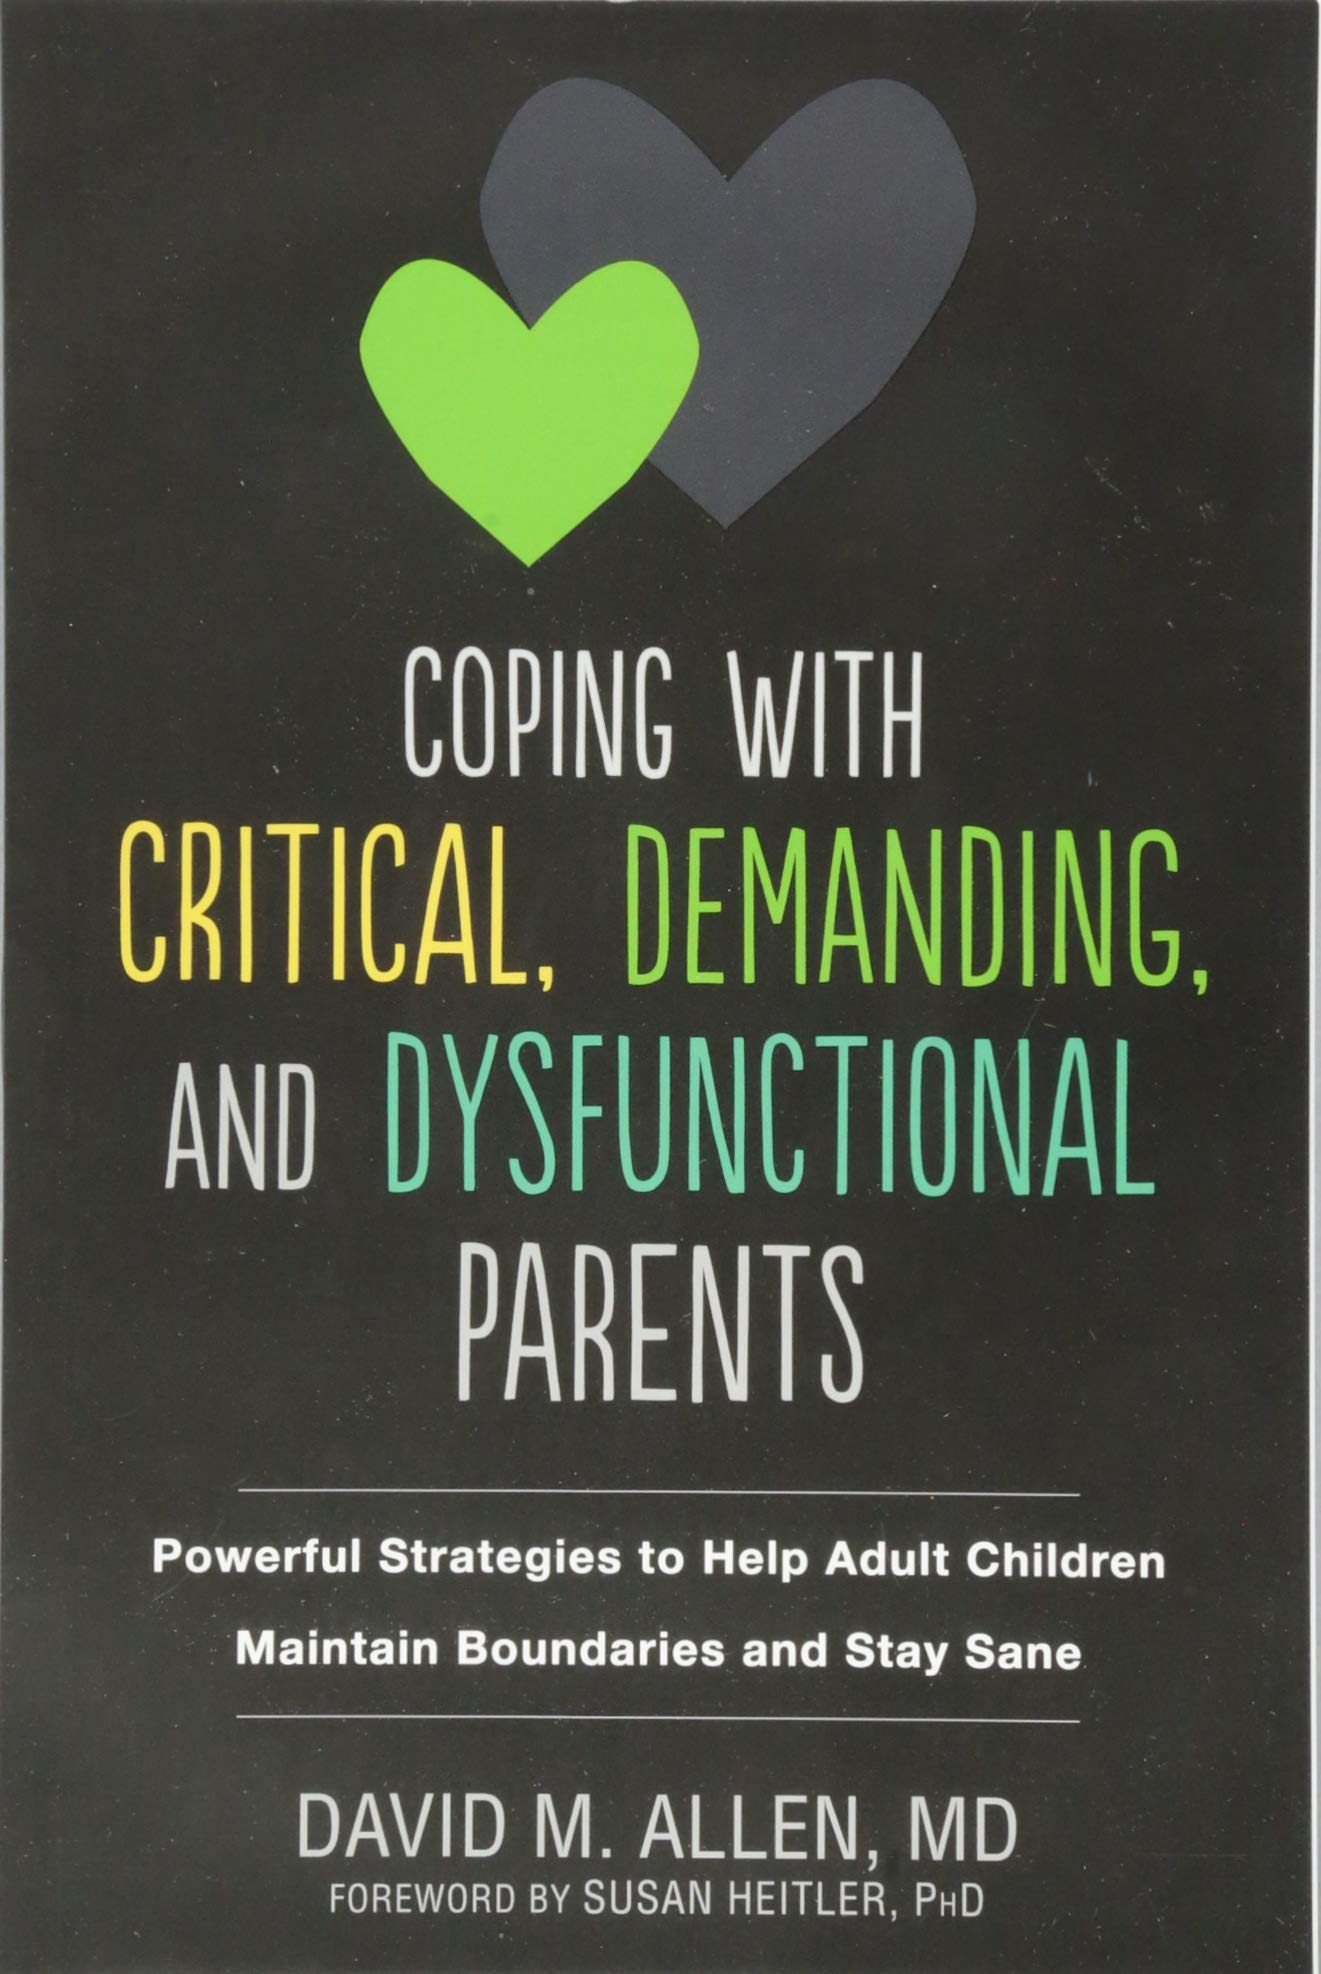 Coping with Critical, Demanding, and Dysfunctional Parents